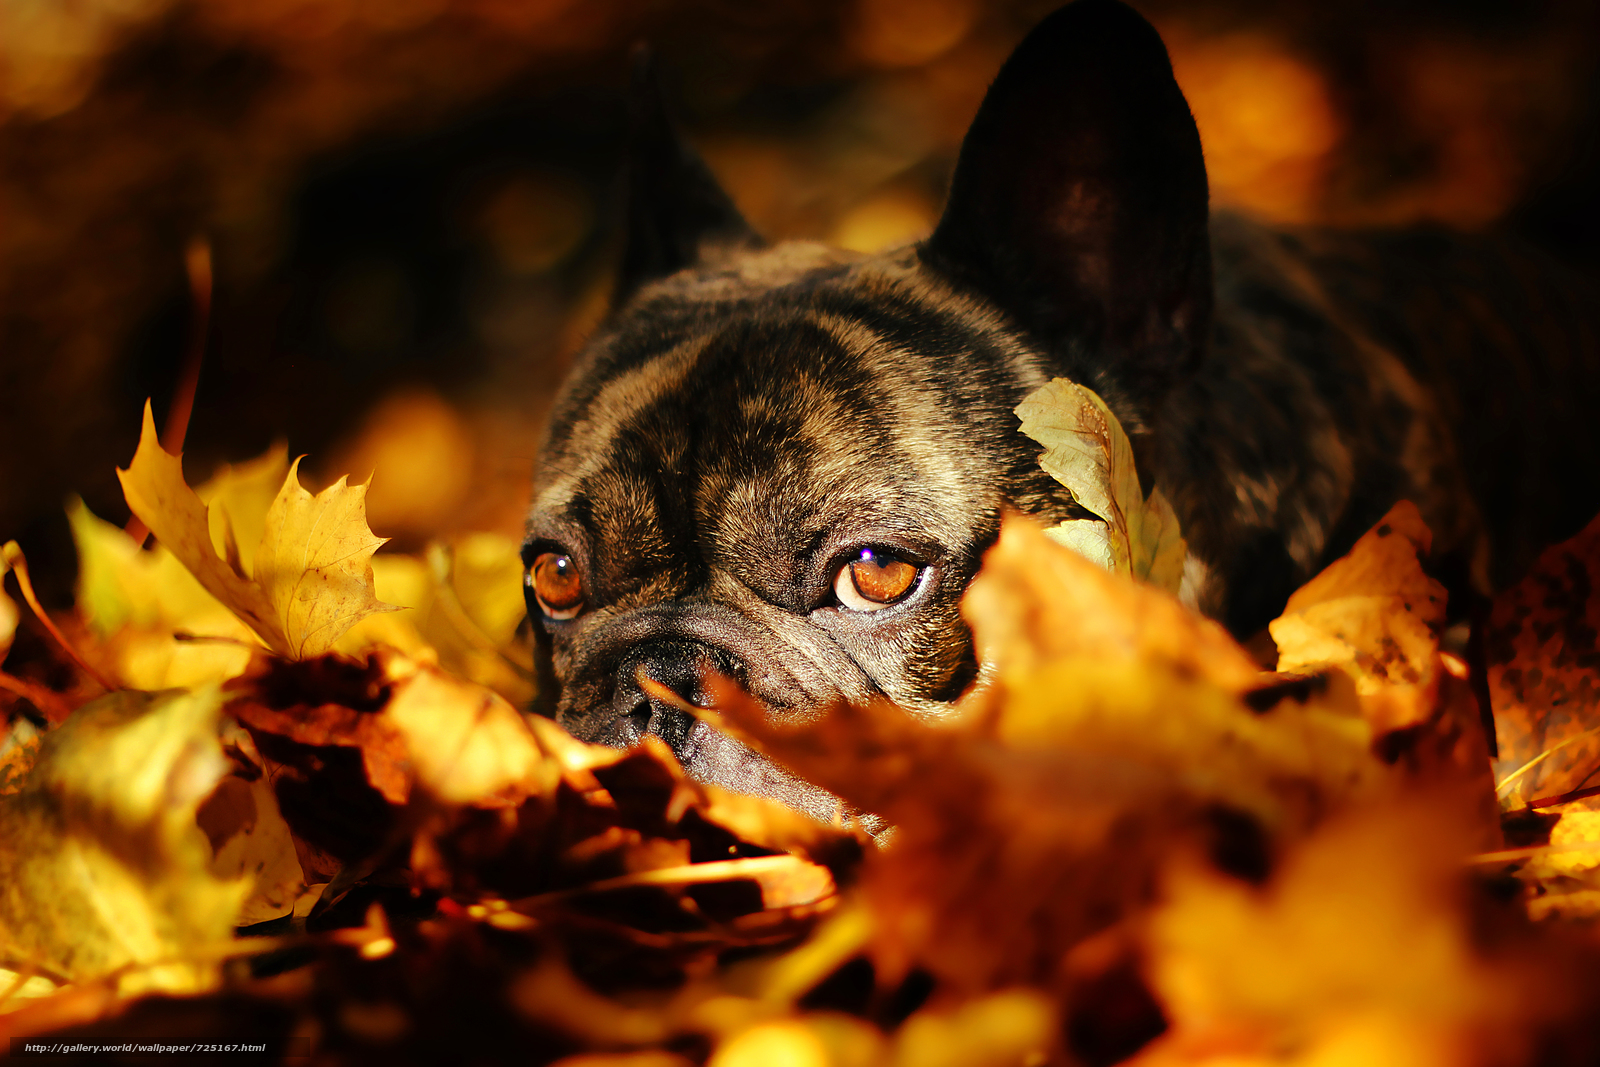 French Bulldog, dog, mordashka, sight, leaves, autumn